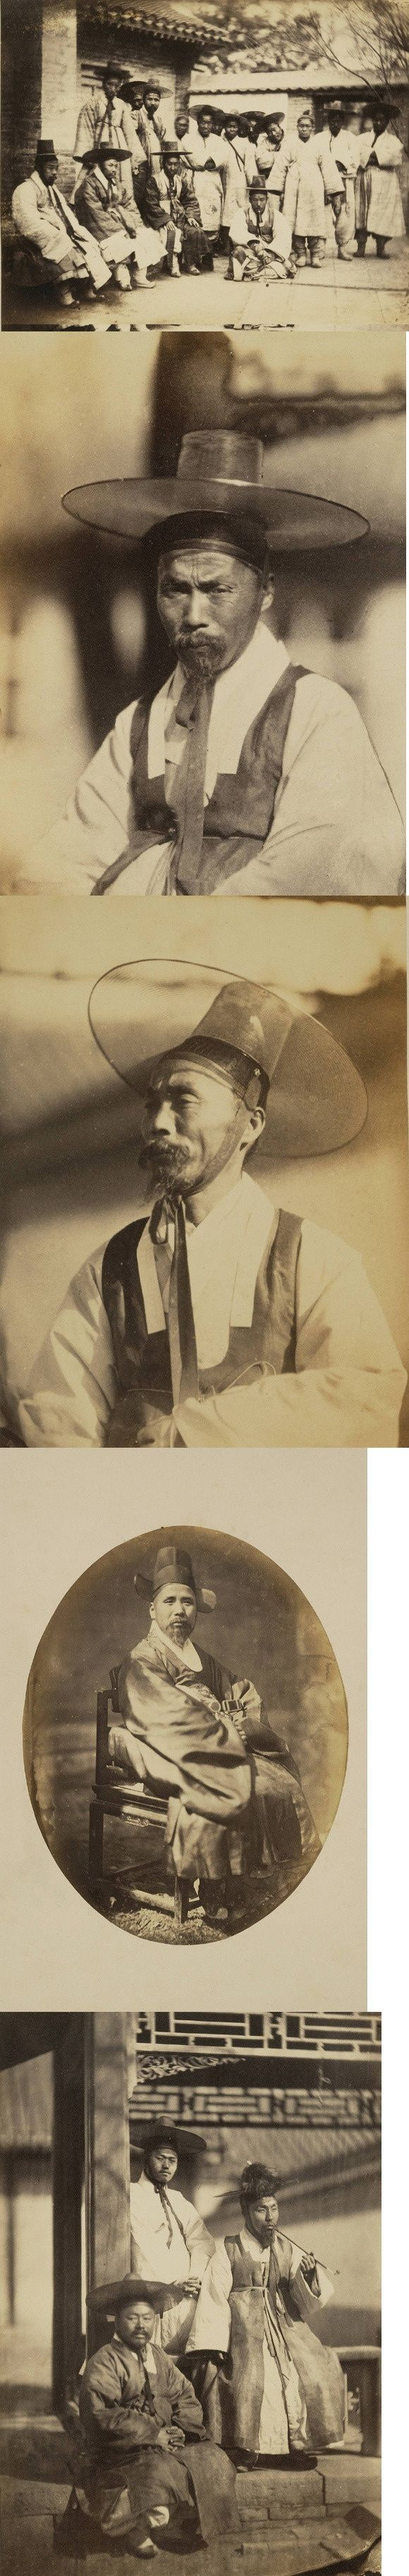 korean traditional costume for men from high or middle class of Korean society. traditional Korean hat- gat. Typically made from horsehair and bamboo were traditionally worn to signify rank. These hats have wide brim - middle or high class